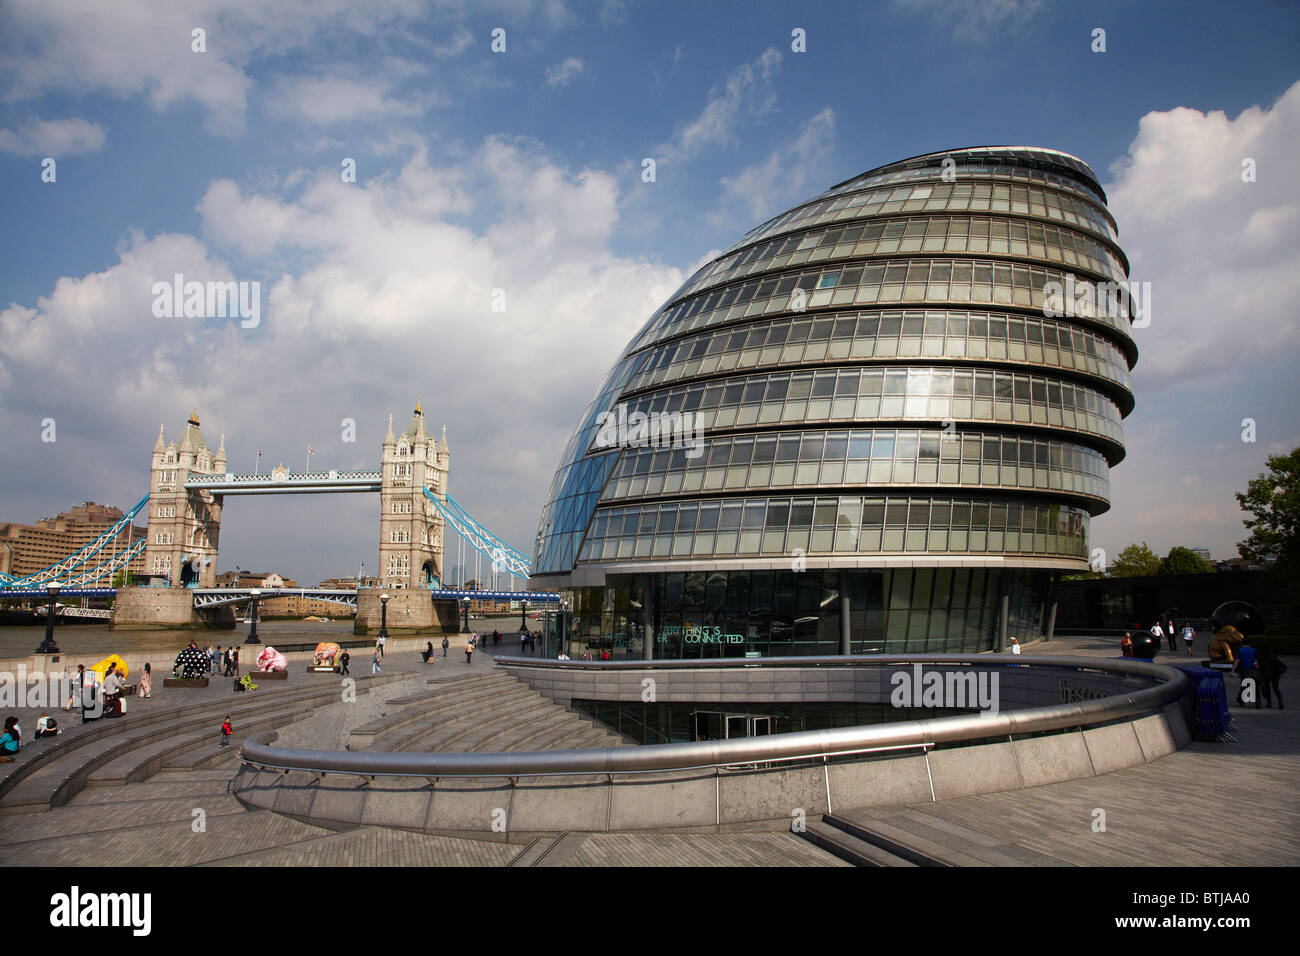 Tower Bridge, and Greater London Authority, City Hall Building, London, England, United Kingdom - Stock Image